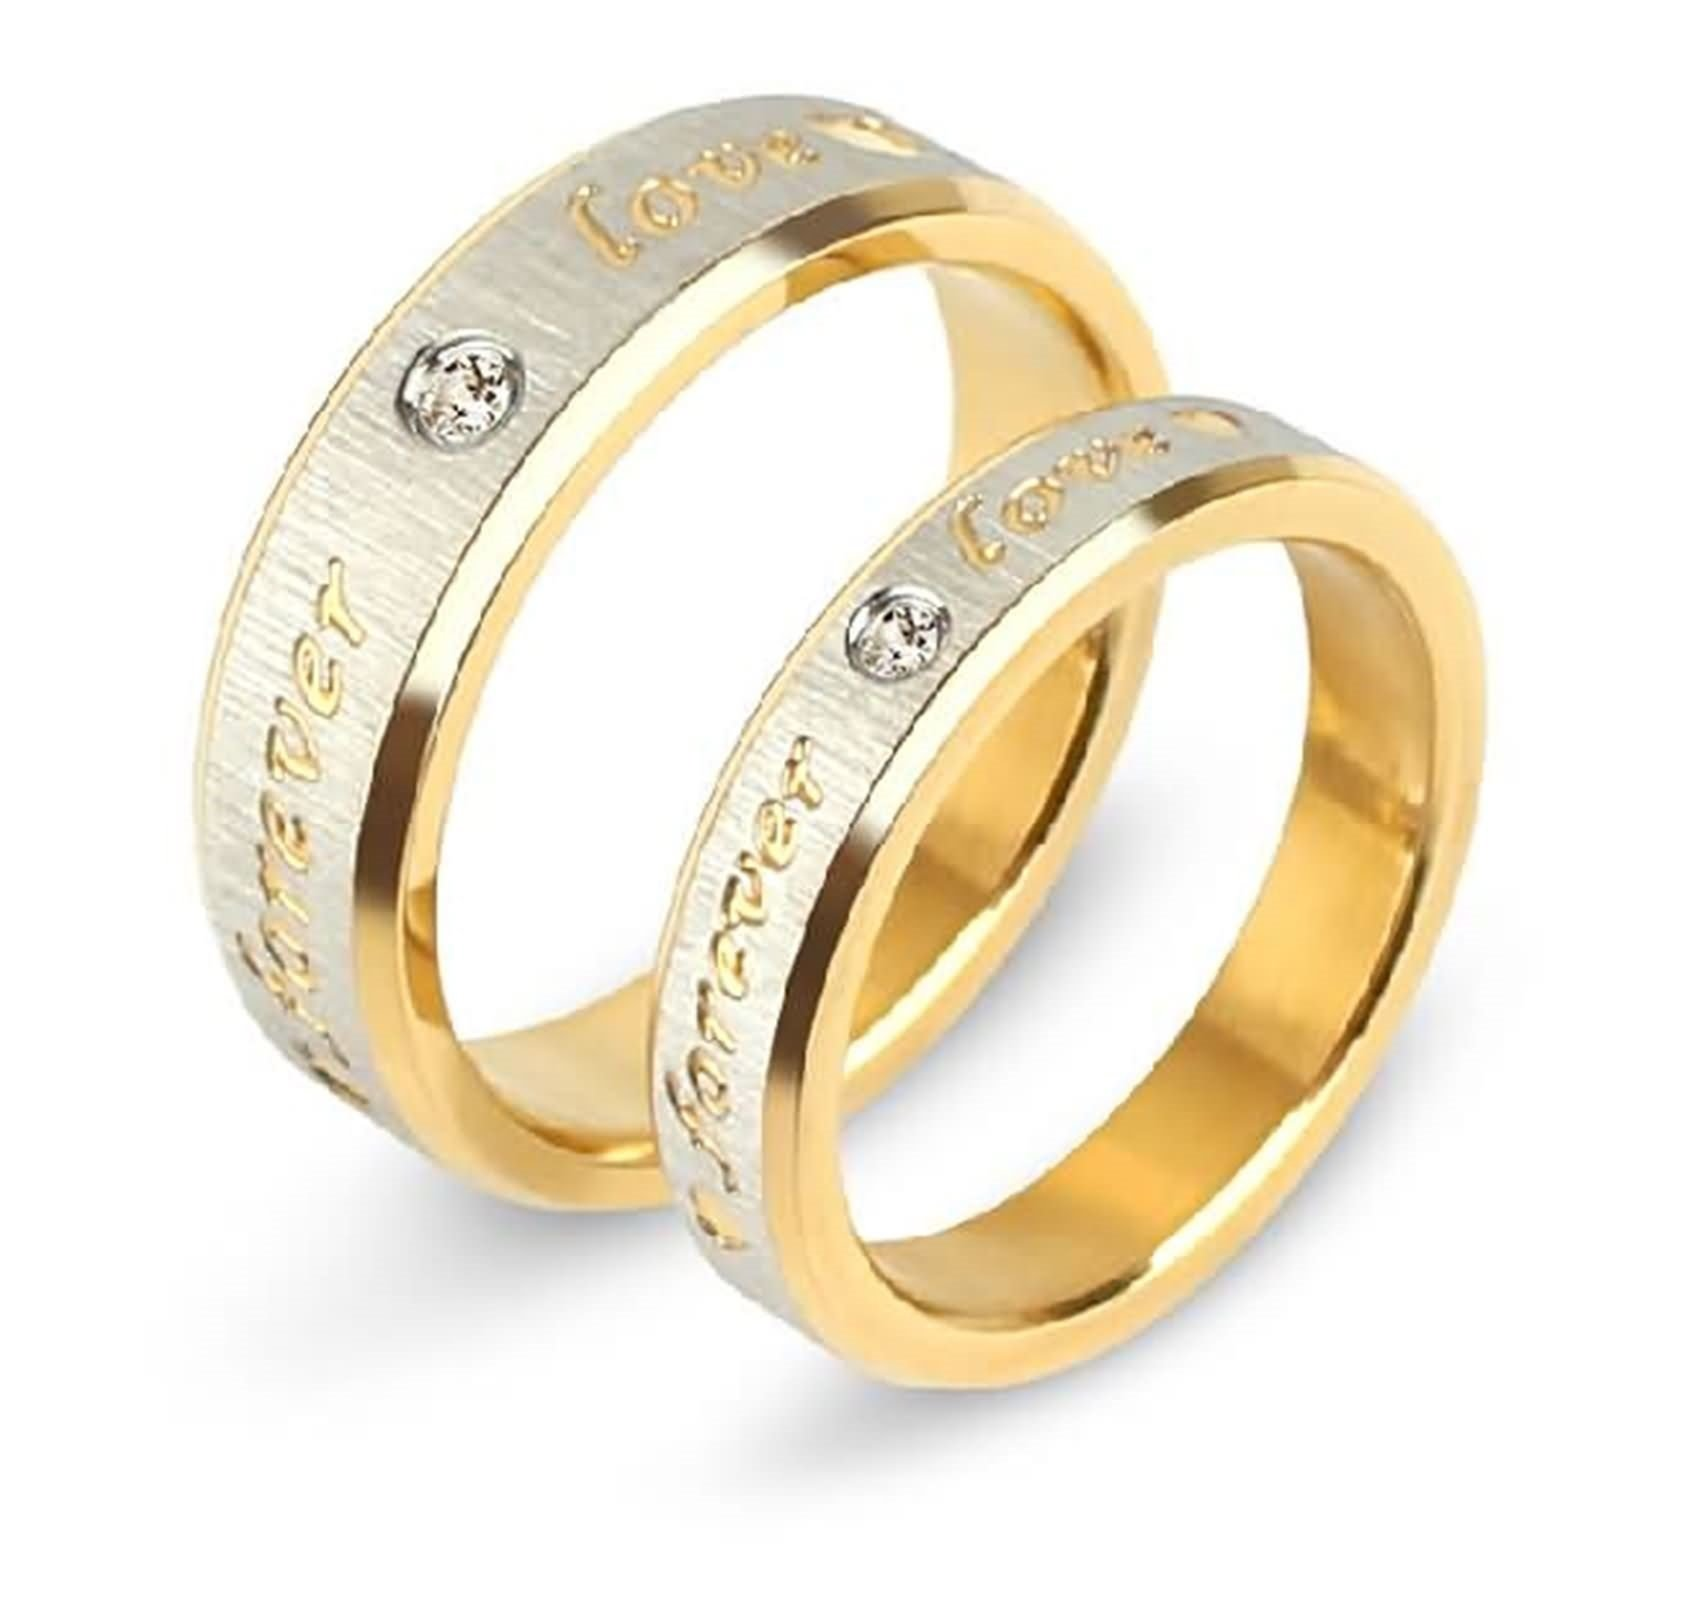 Daesar 1PCS Couple Rings Stainless Steel Ring Engraving Forever Love 1PCS White Cubic Zirconia Wedding Ring Gold and Silver Ring Size 11